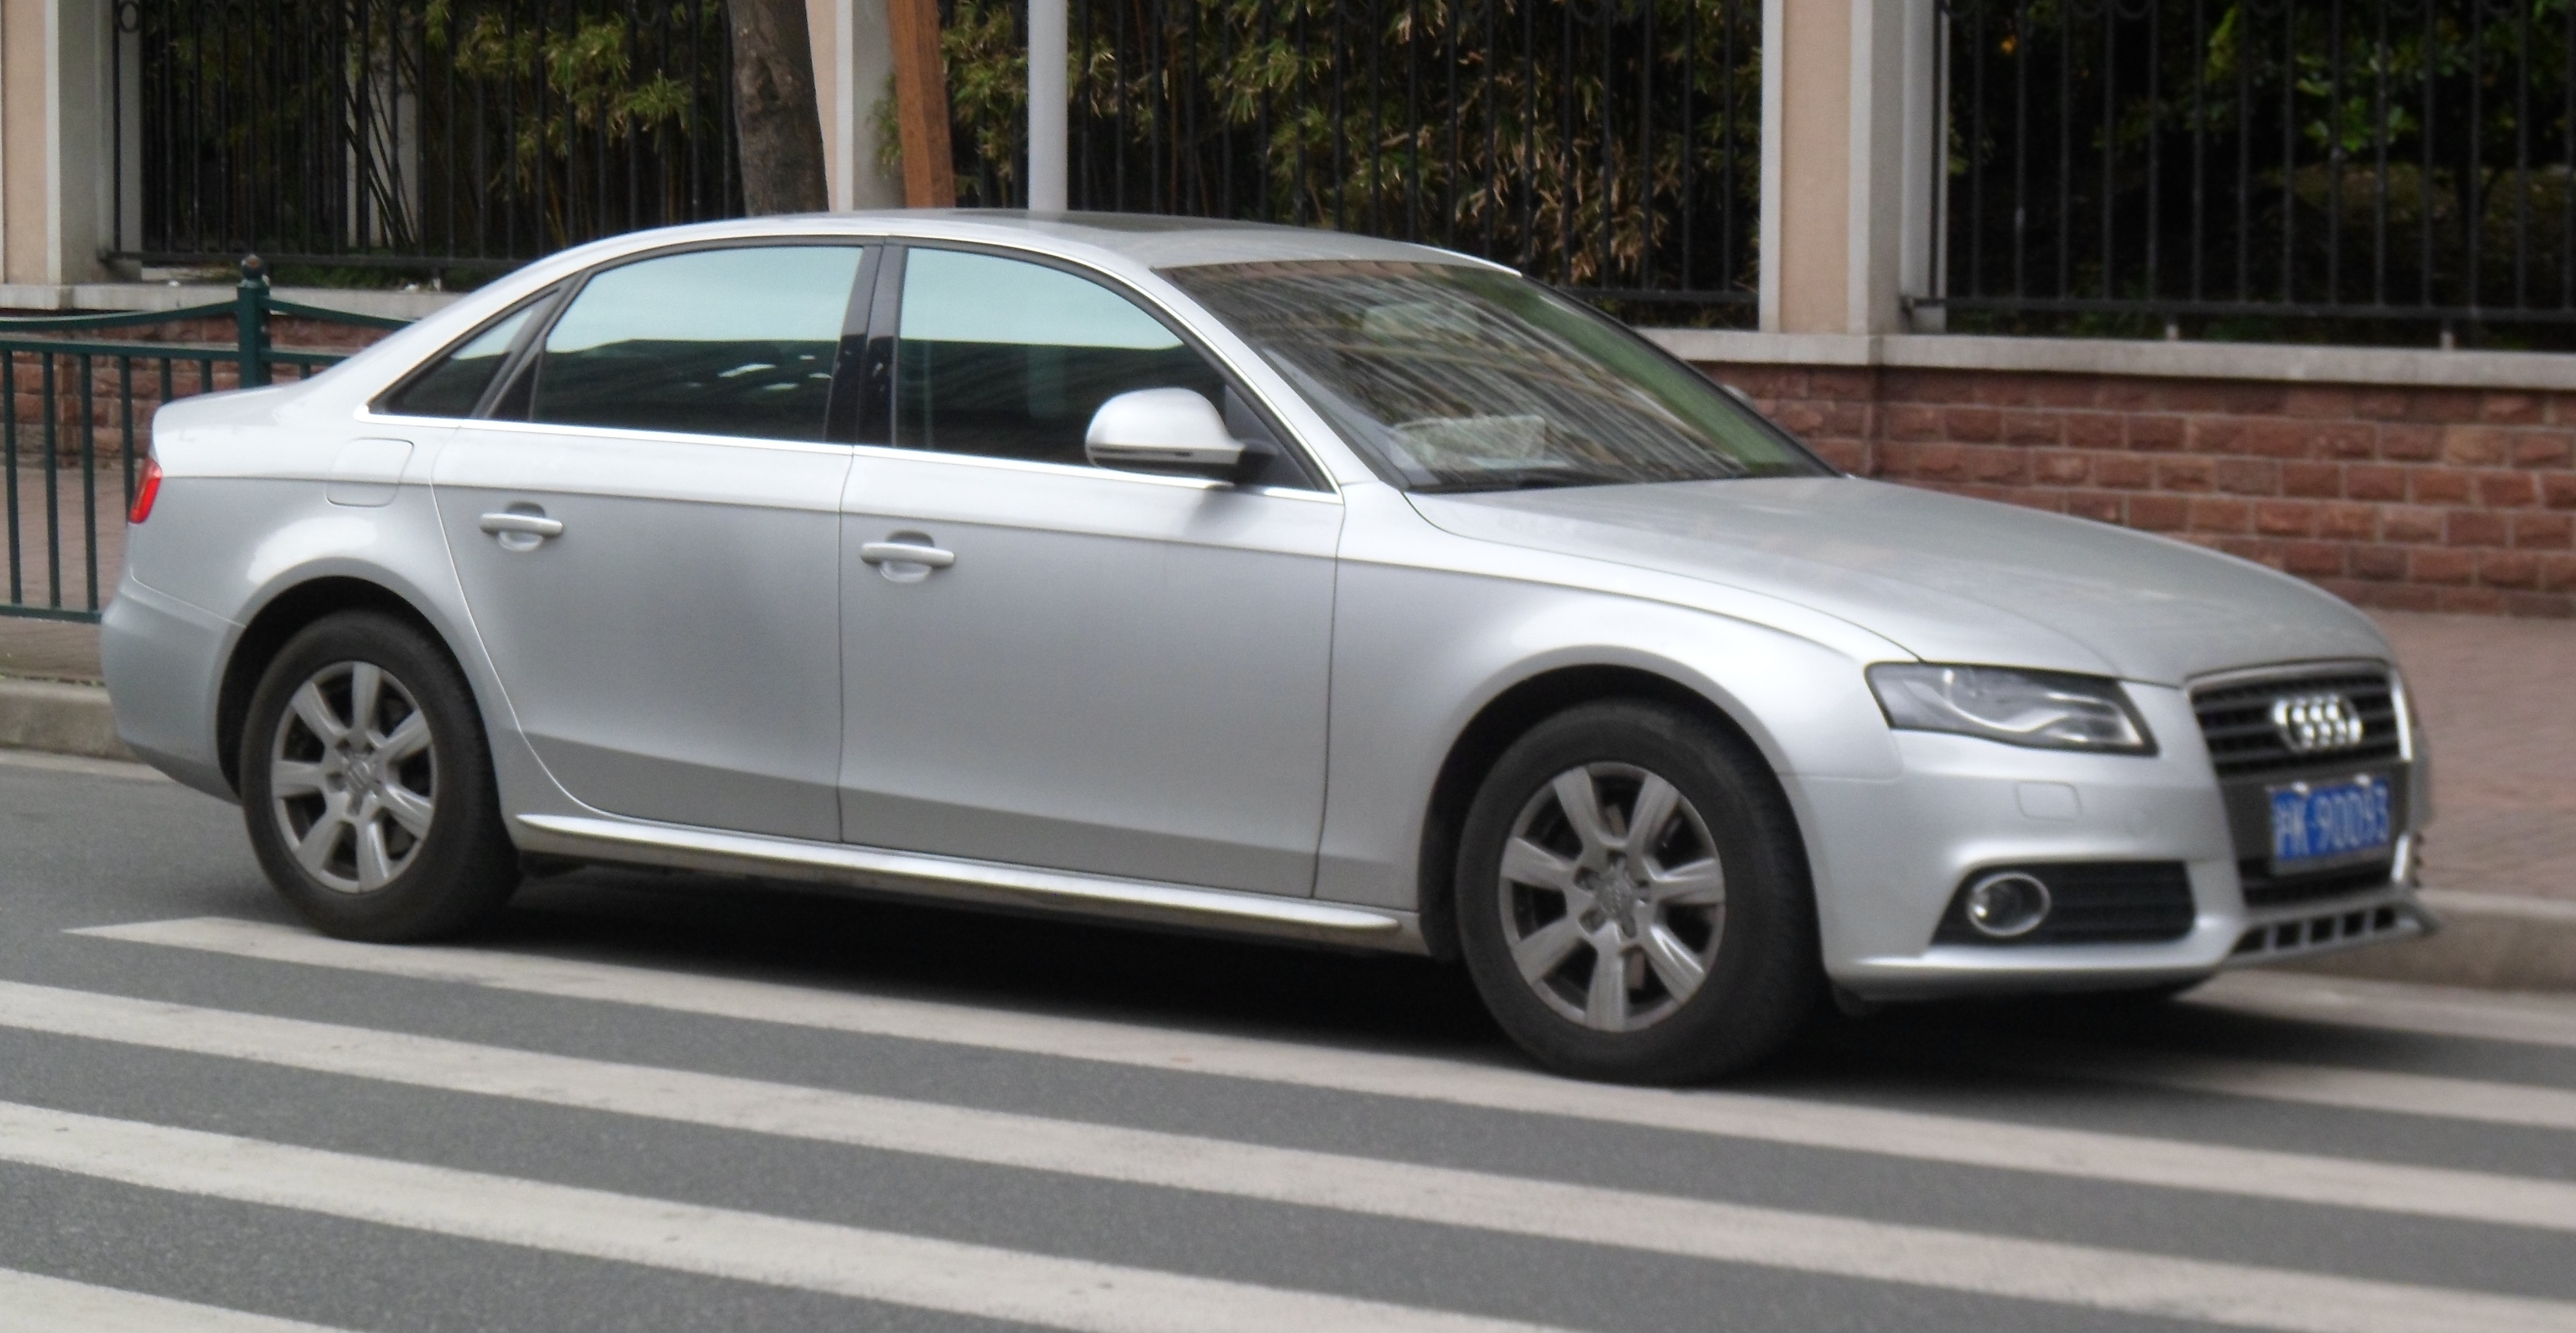 File Audi A4l B8 02 China 2012 04 14 Jpg Wikimedia Commons